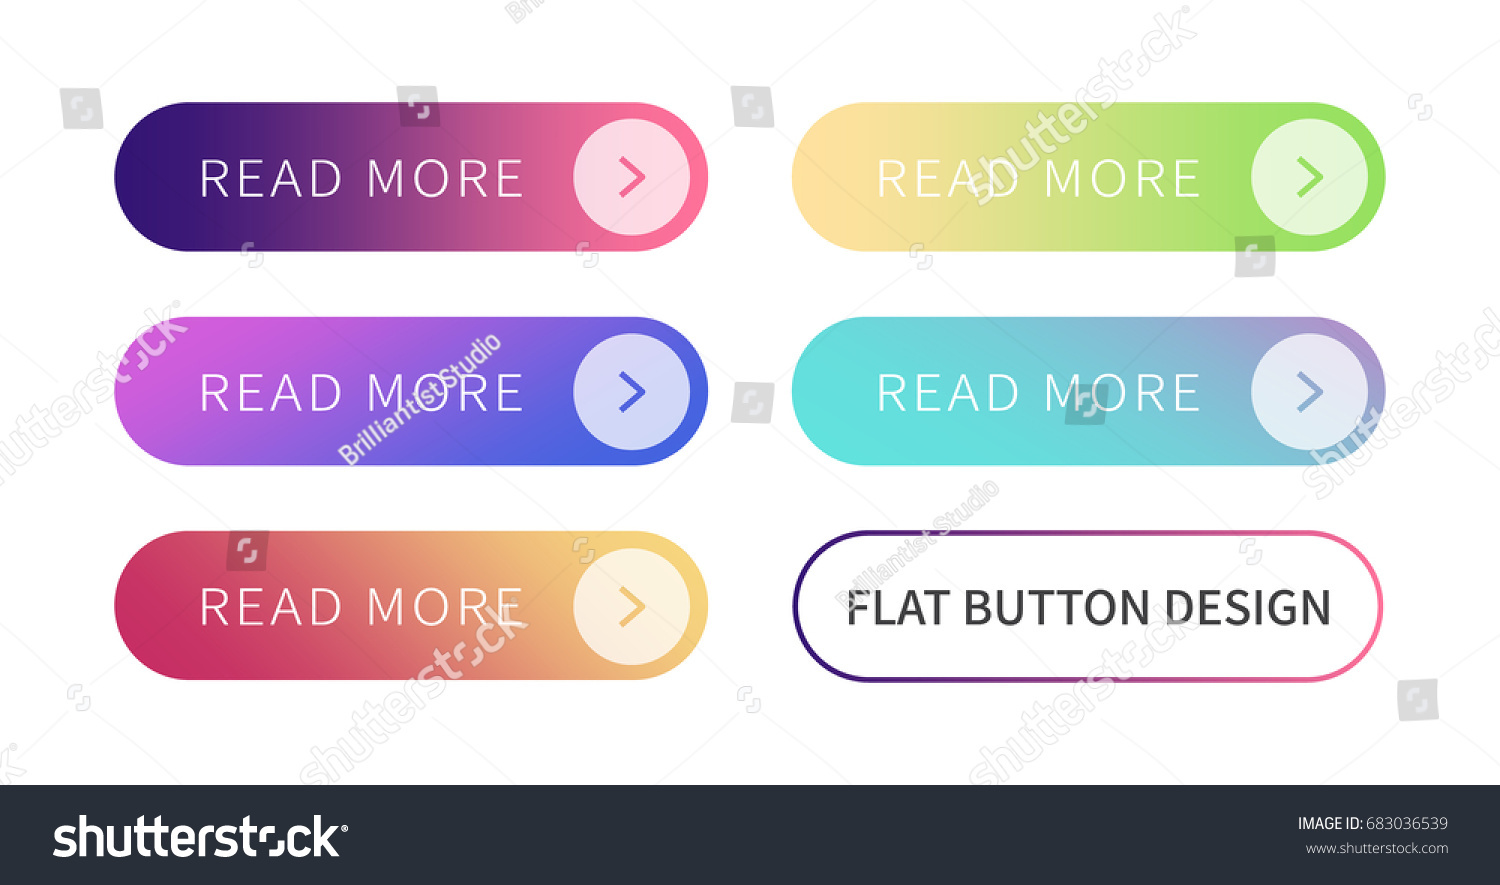 Call to action buttons set flat design ; Read more Button.Vector illustration buttons with colorful gradient or color transition for your brilliant Web button, mobile devices, icons, banner & more. #683036539